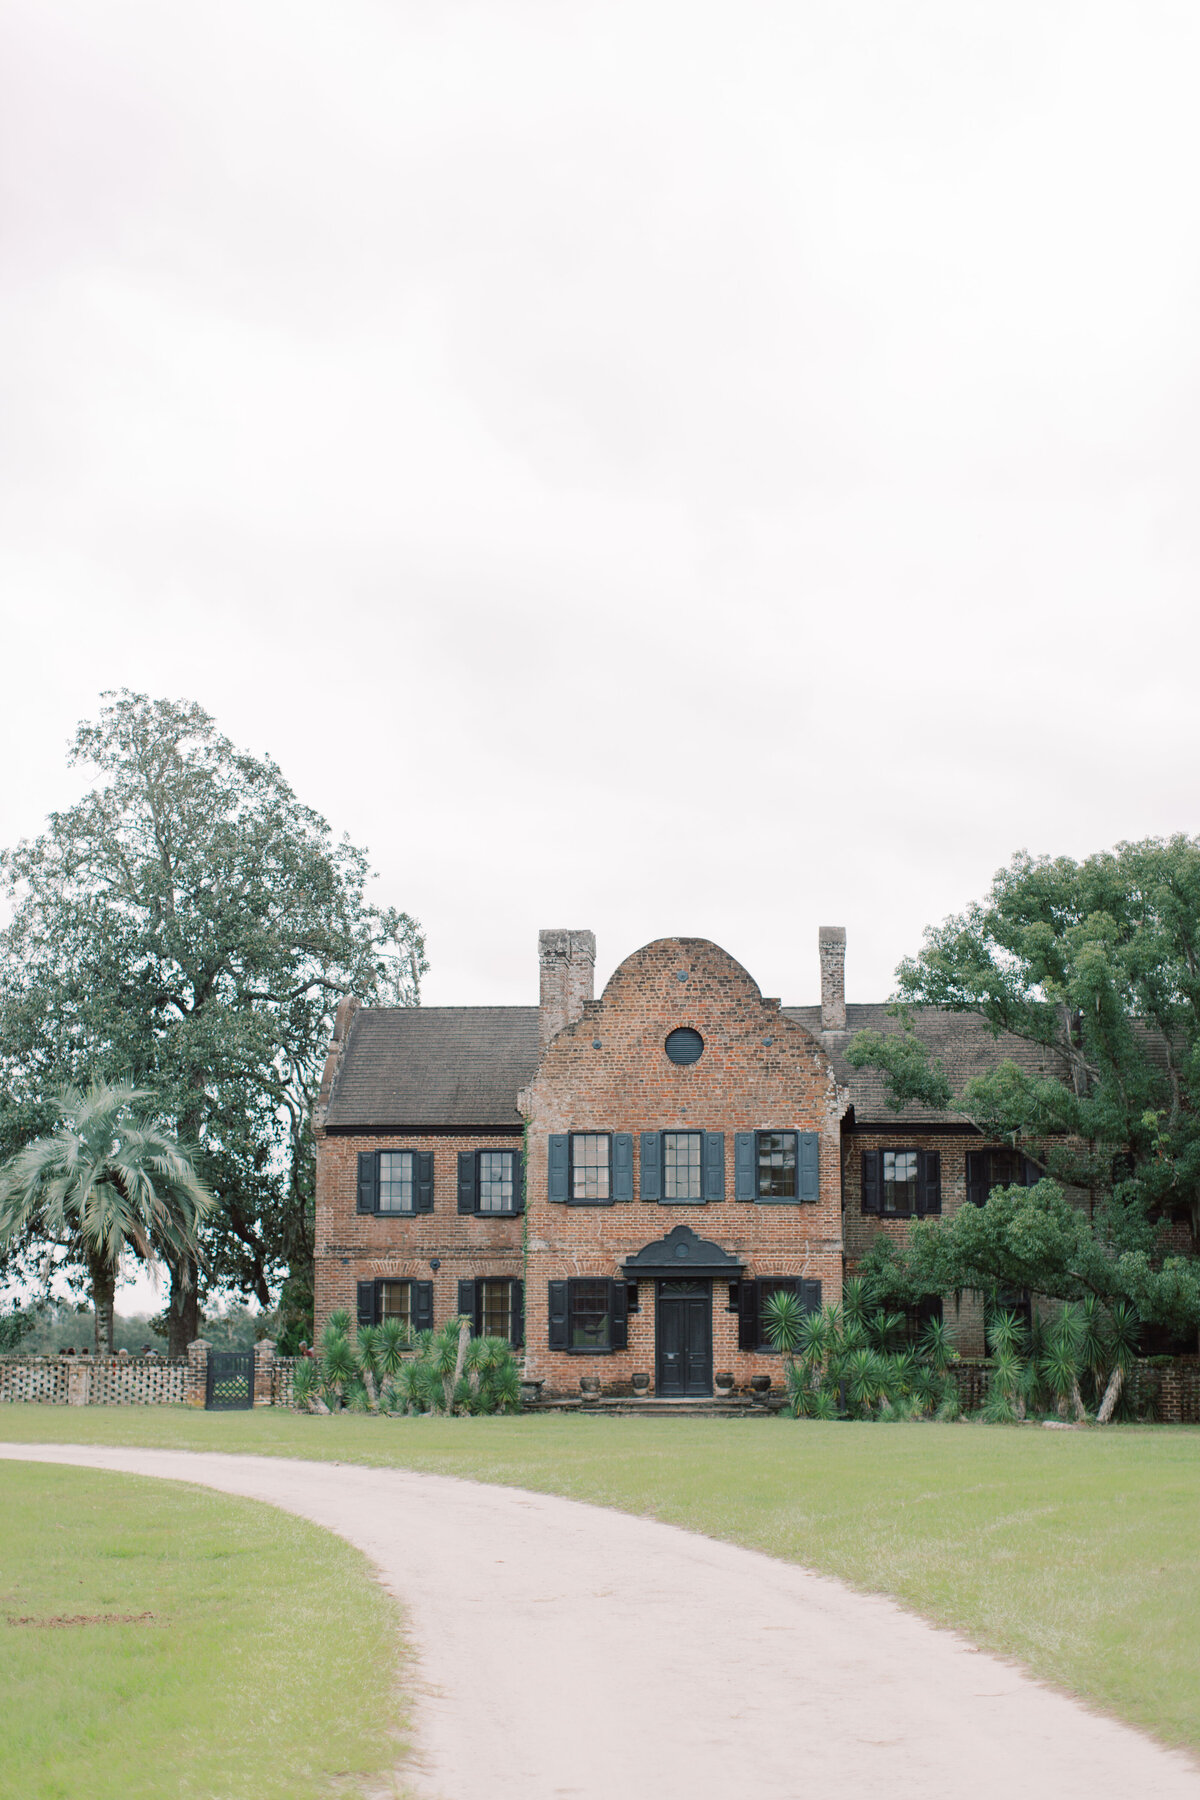 Melton_Wedding__Middleton_Place_Plantation_Charleston_South_Carolina_Jacksonville_Florida_Devon_Donnahoo_Photography__0018